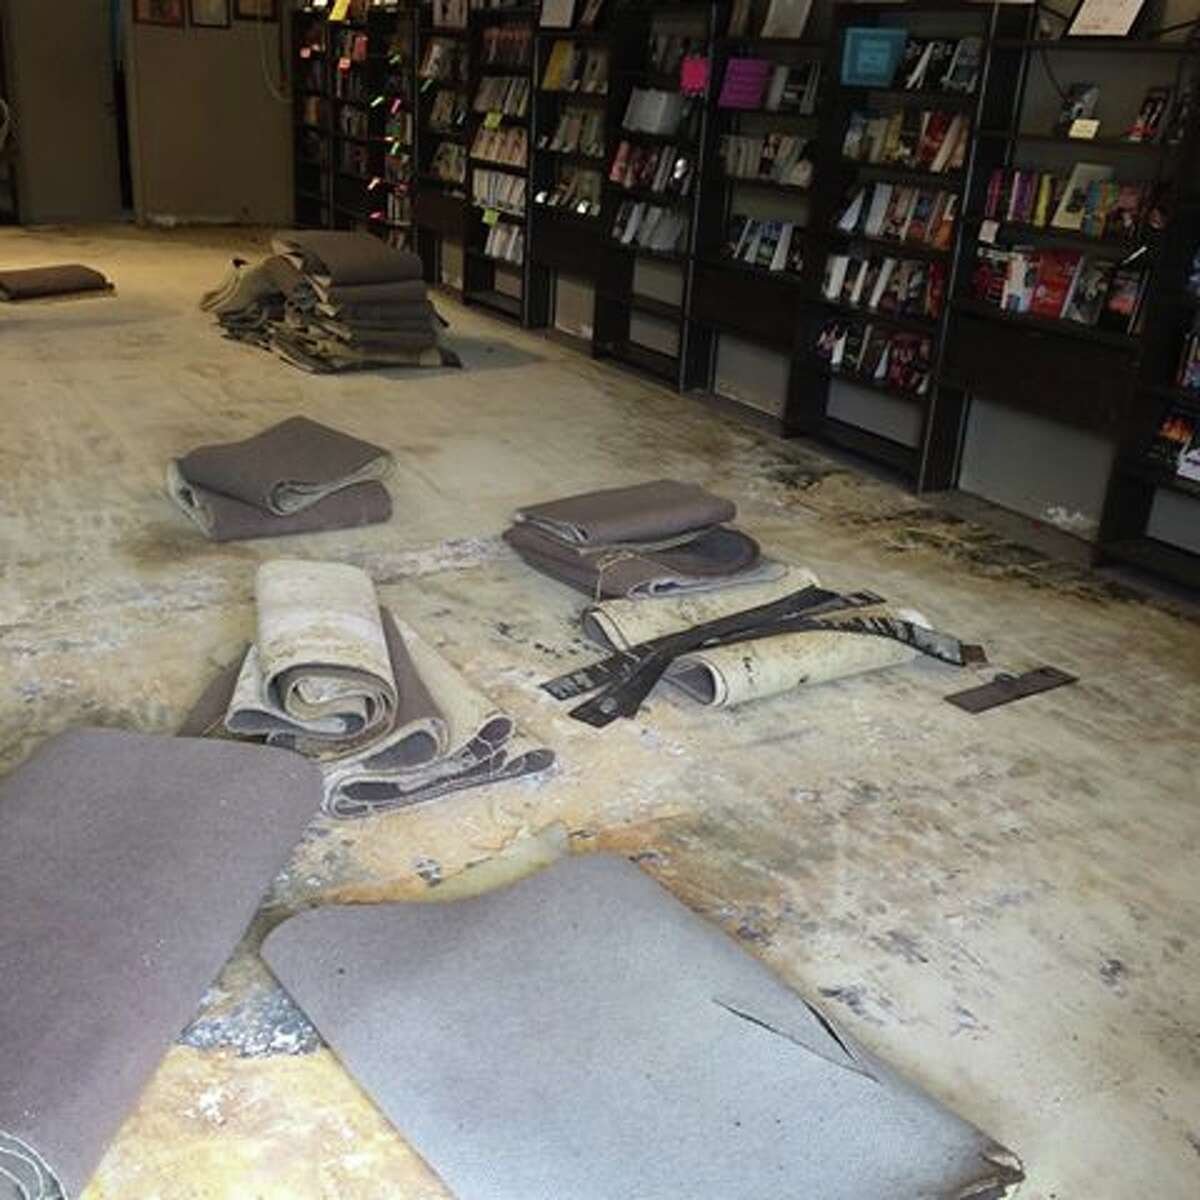 Drying out Water flowed into the store overnight Sunday, leaving the carpet wet and ruined. But Murder By The Book is still open and author events are still on the schedule.